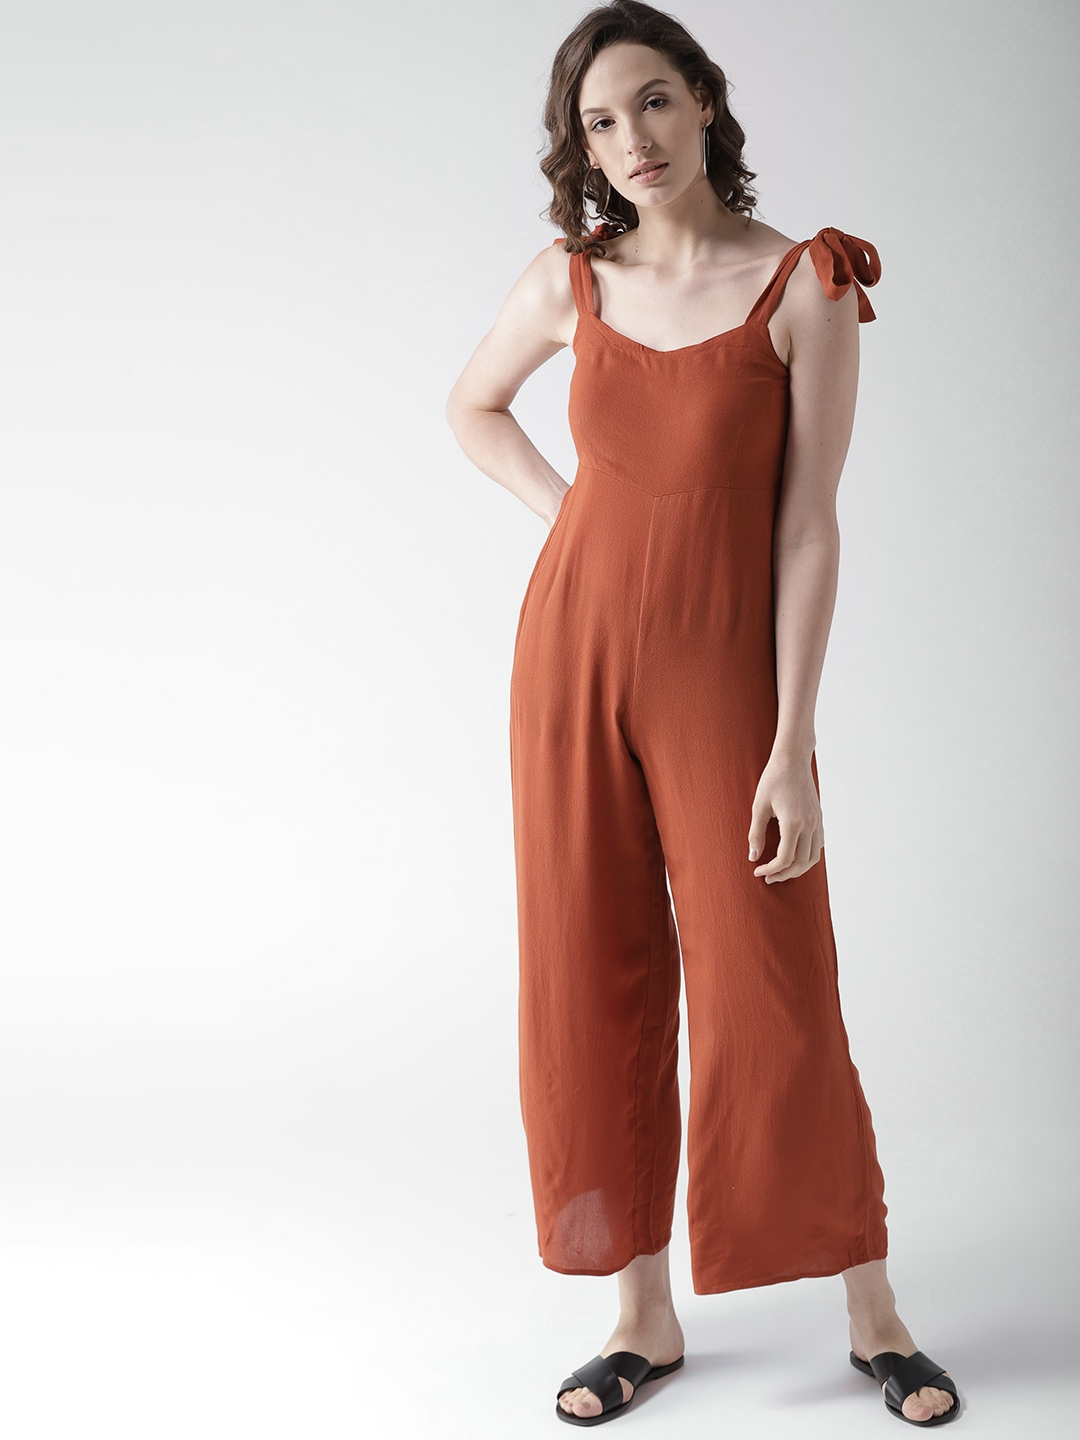 8b0aeb517f0 Buy FOREVER 21 Rust Brown Solid Basic Jumpsuit - Jumpsuit for Women ...